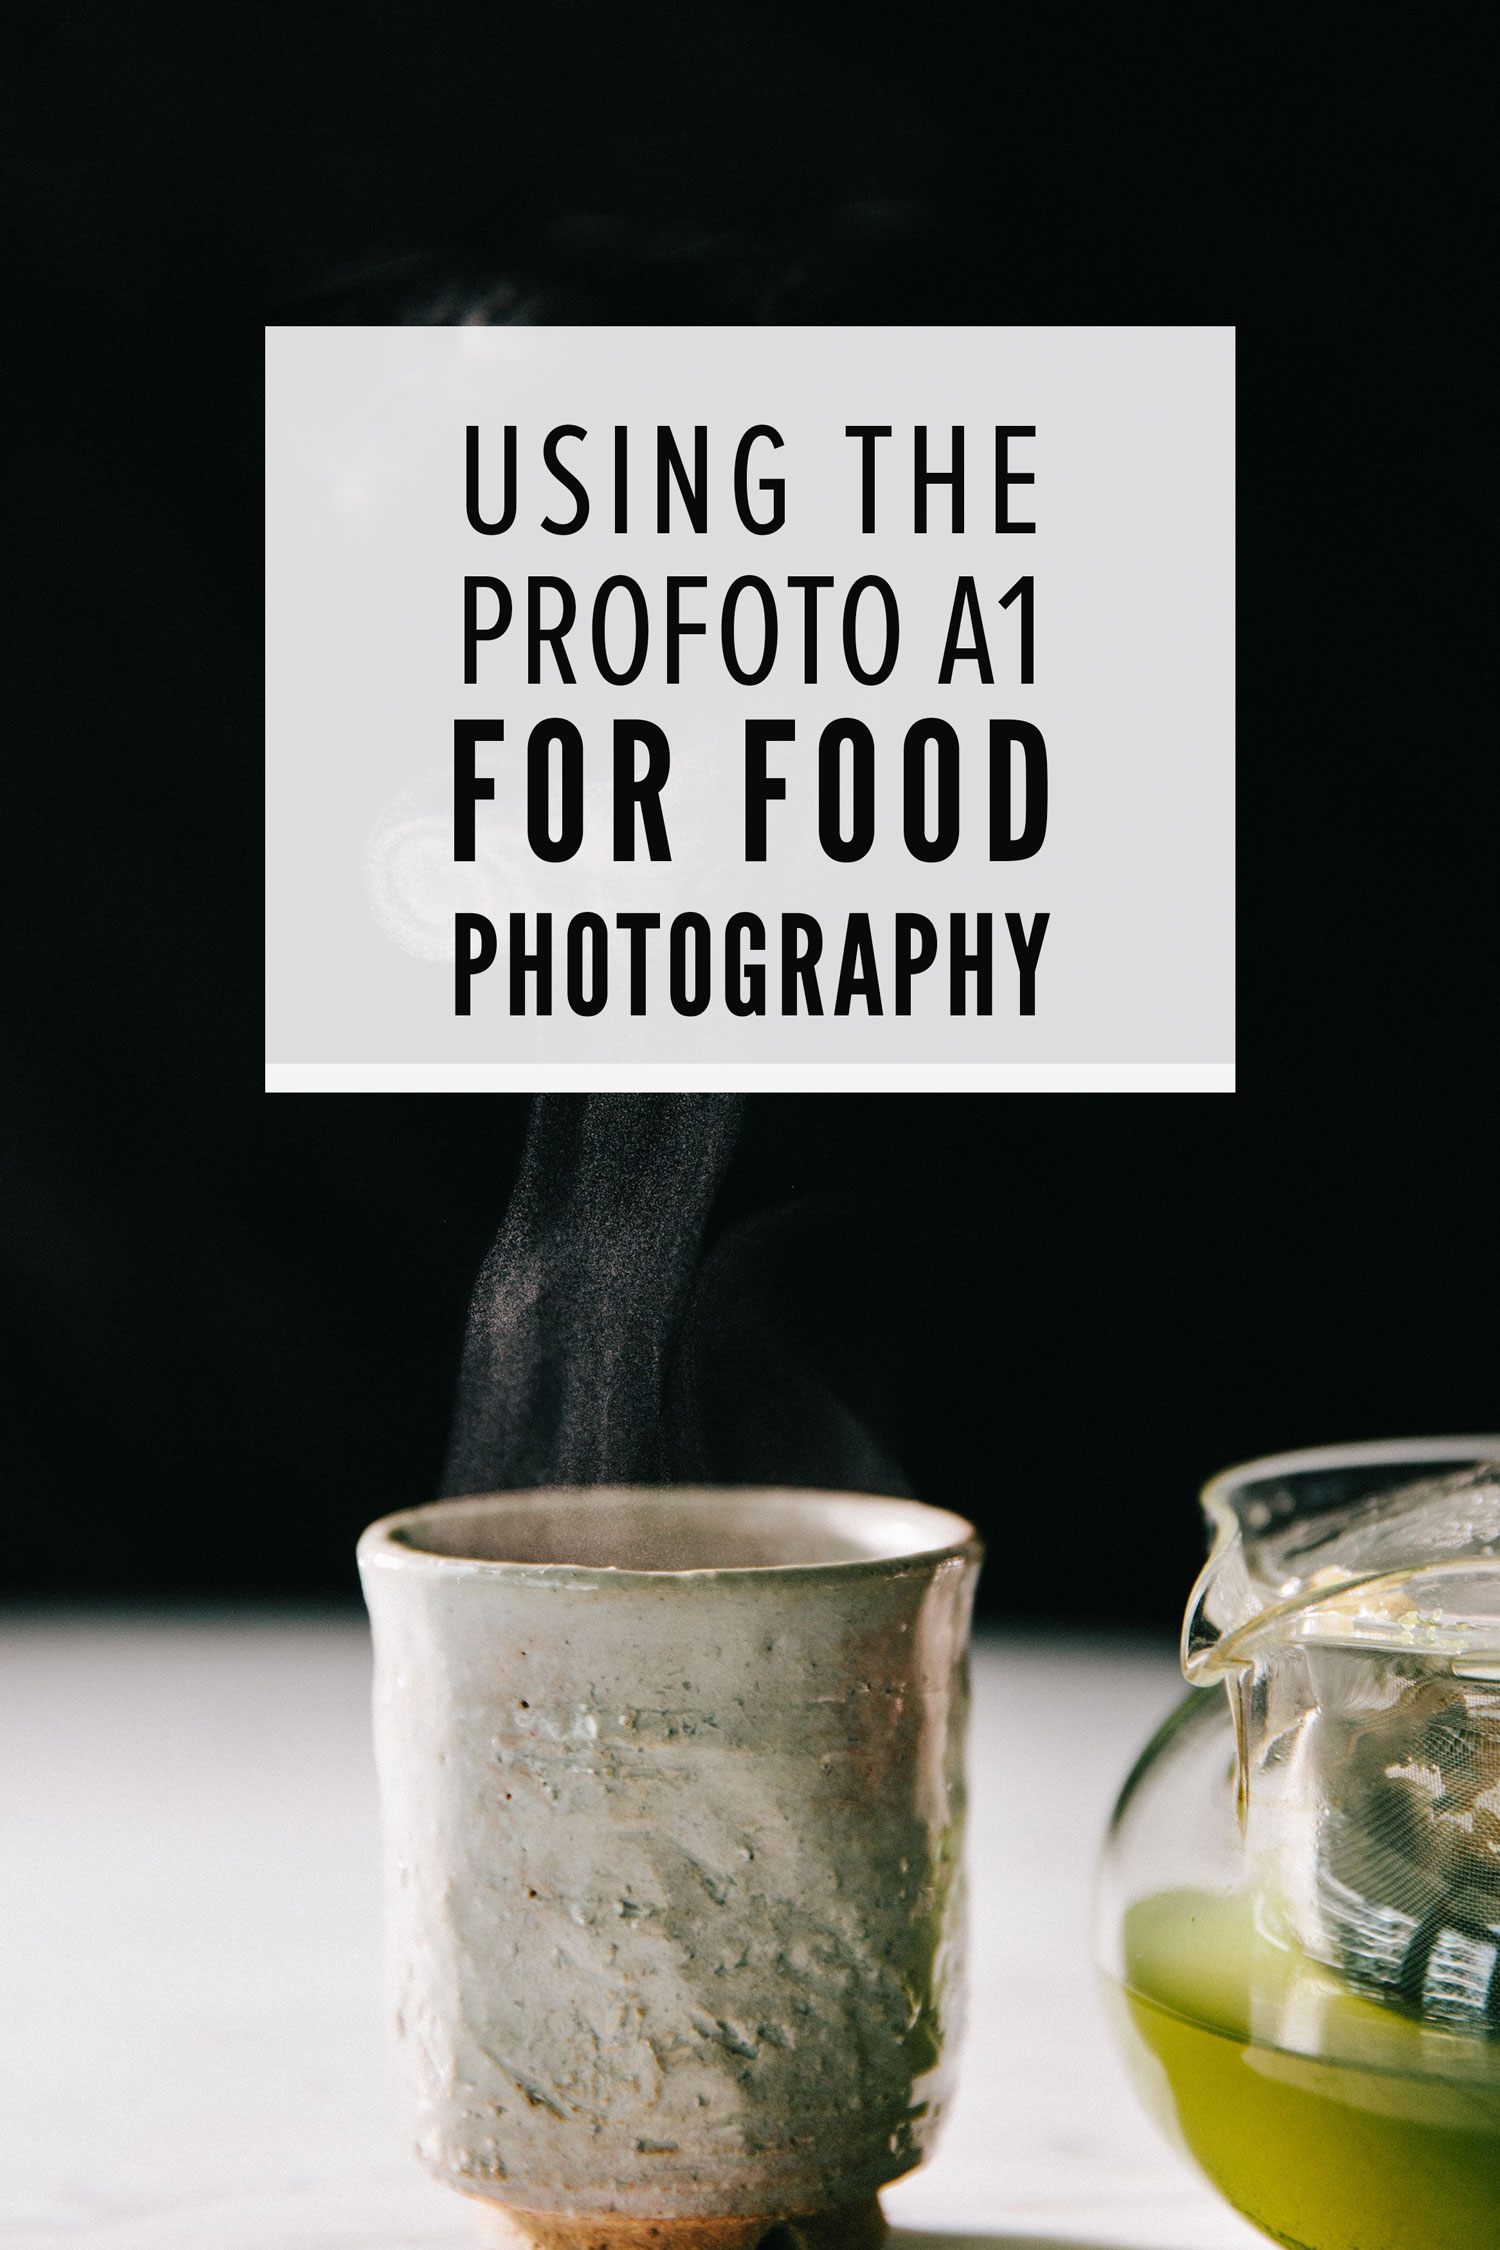 Using the Profoto A1 for Food Photography